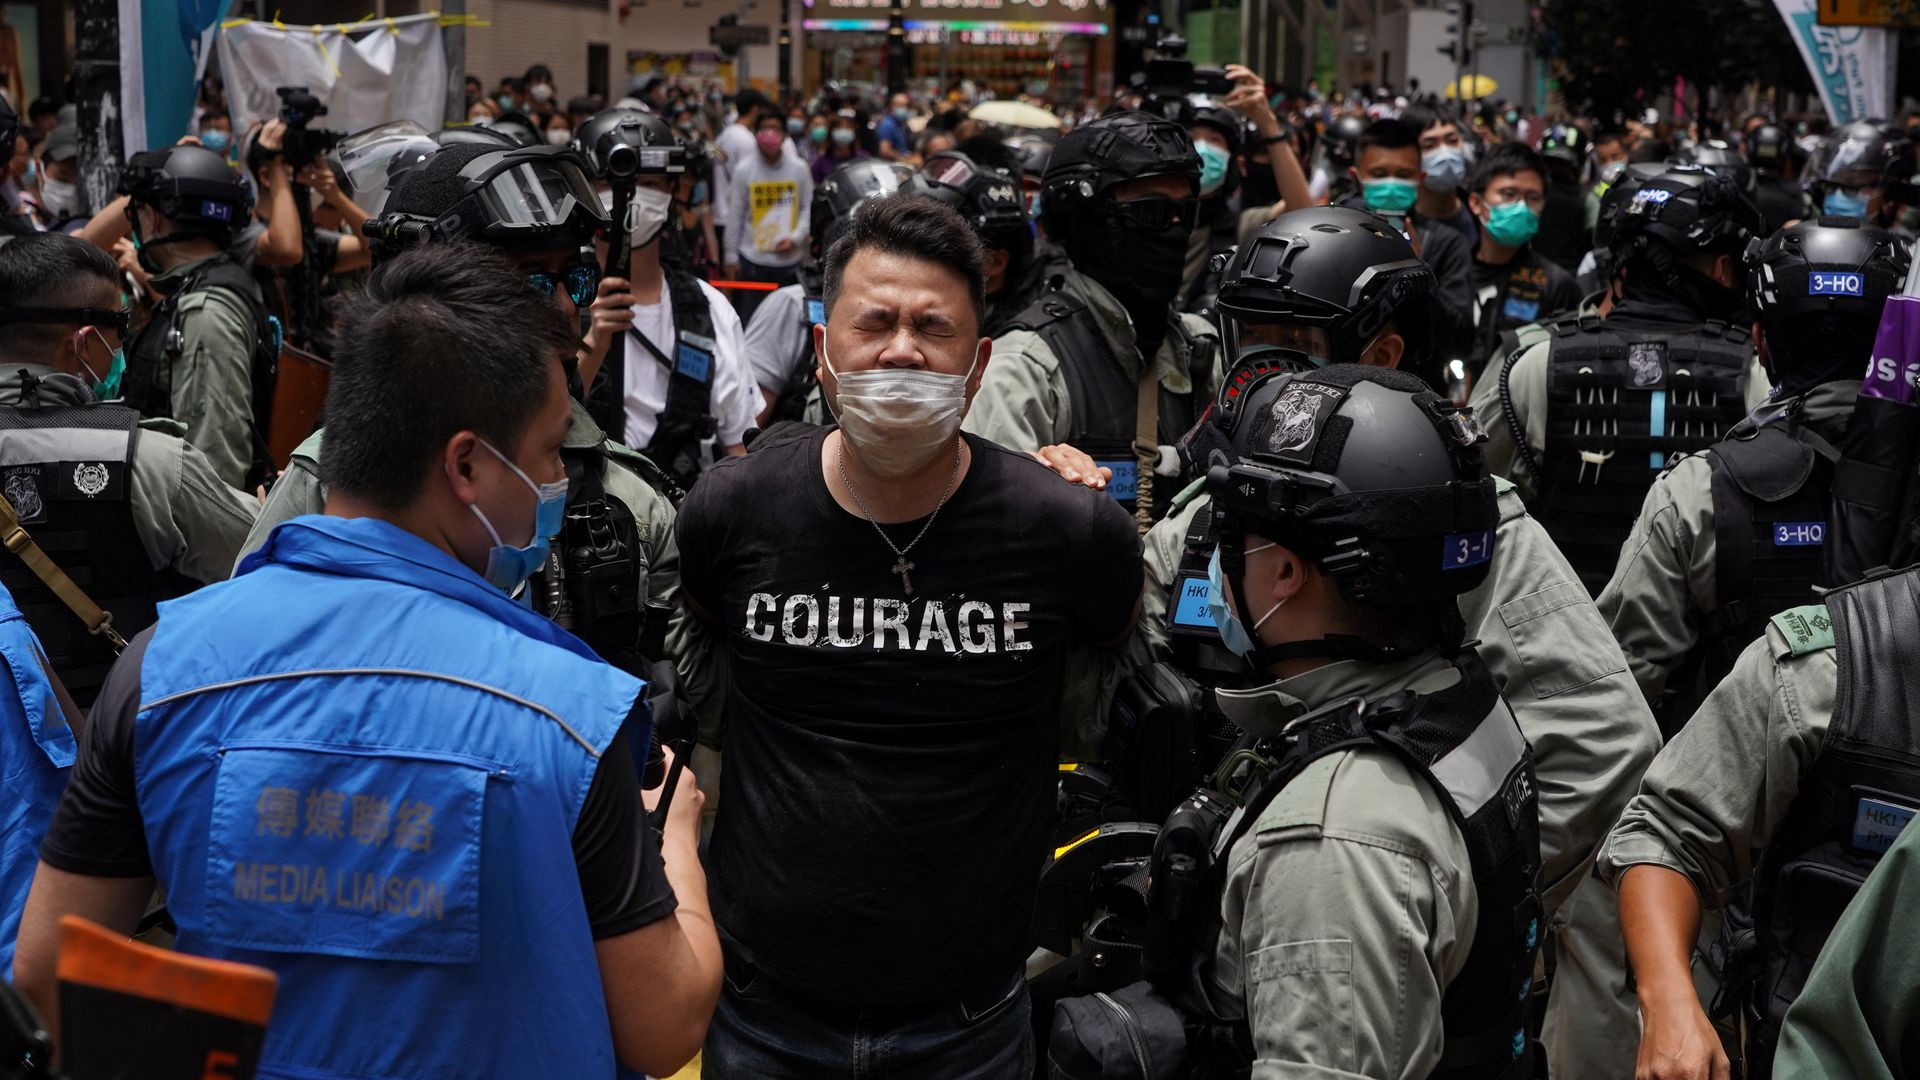 A pro-democracy lawmaker in Hong Kong is arrested by police during a protest